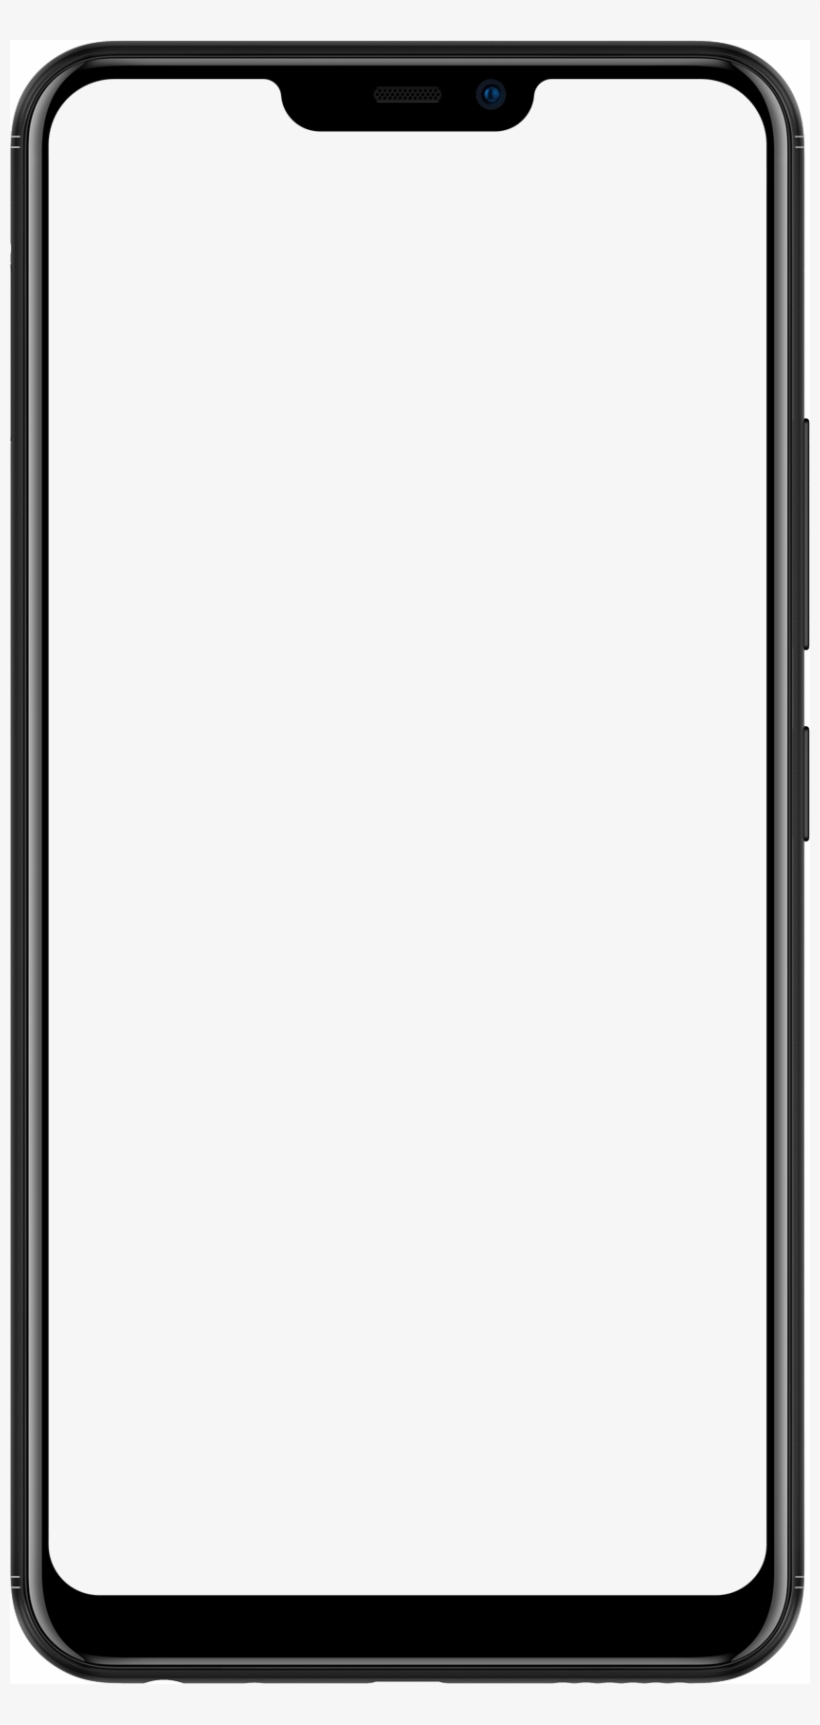 Phone - Frame For Youtube Video, transparent png #5562584